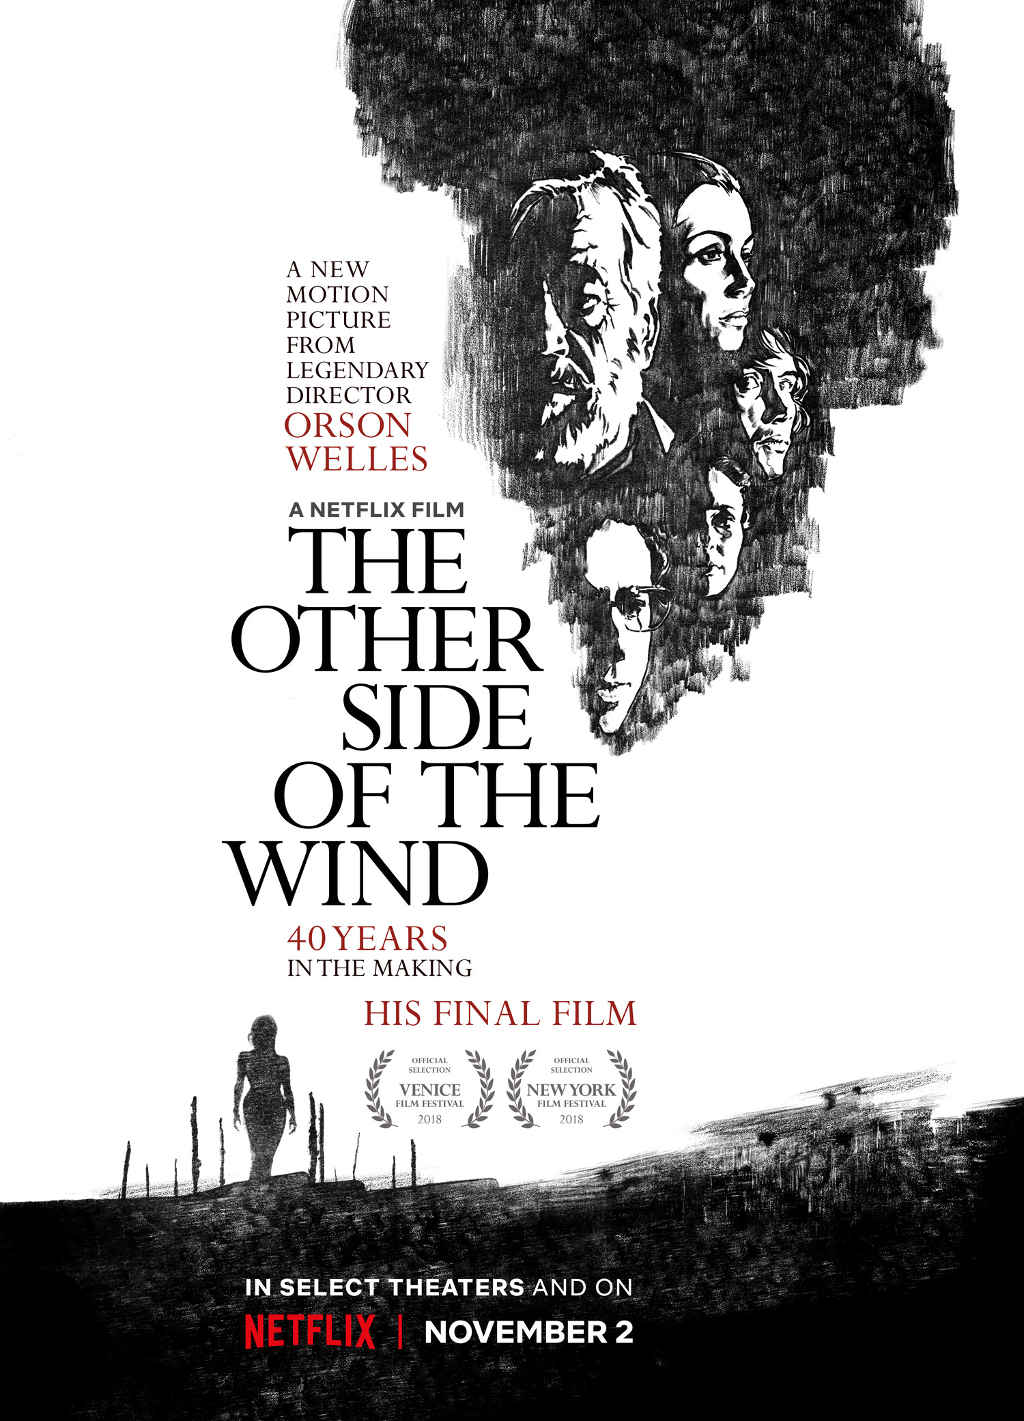 Netflix The Other Side Of The Wind poster